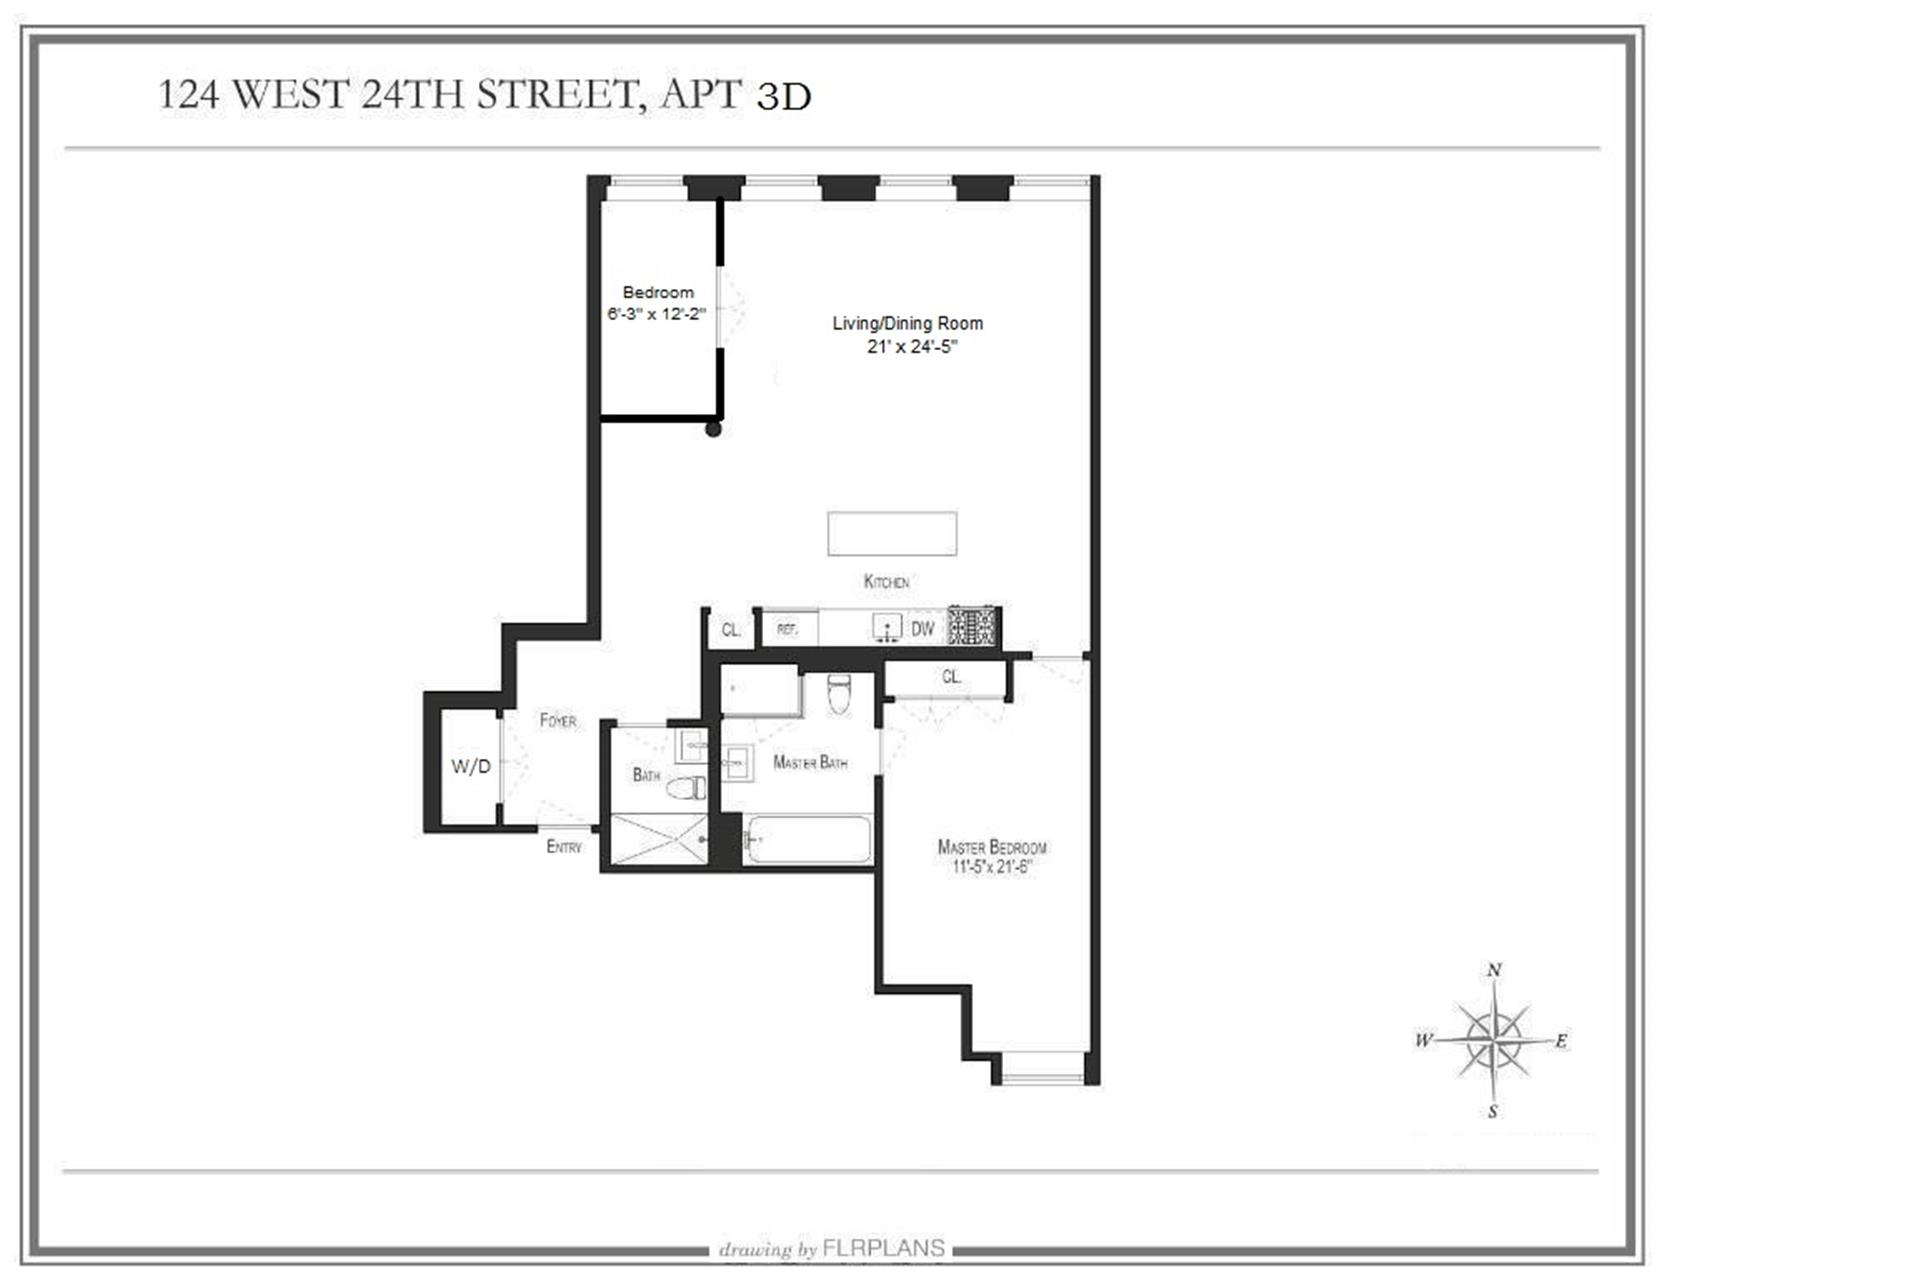 Floor plan of 124 West 24th St, 3D - Chelsea, New York